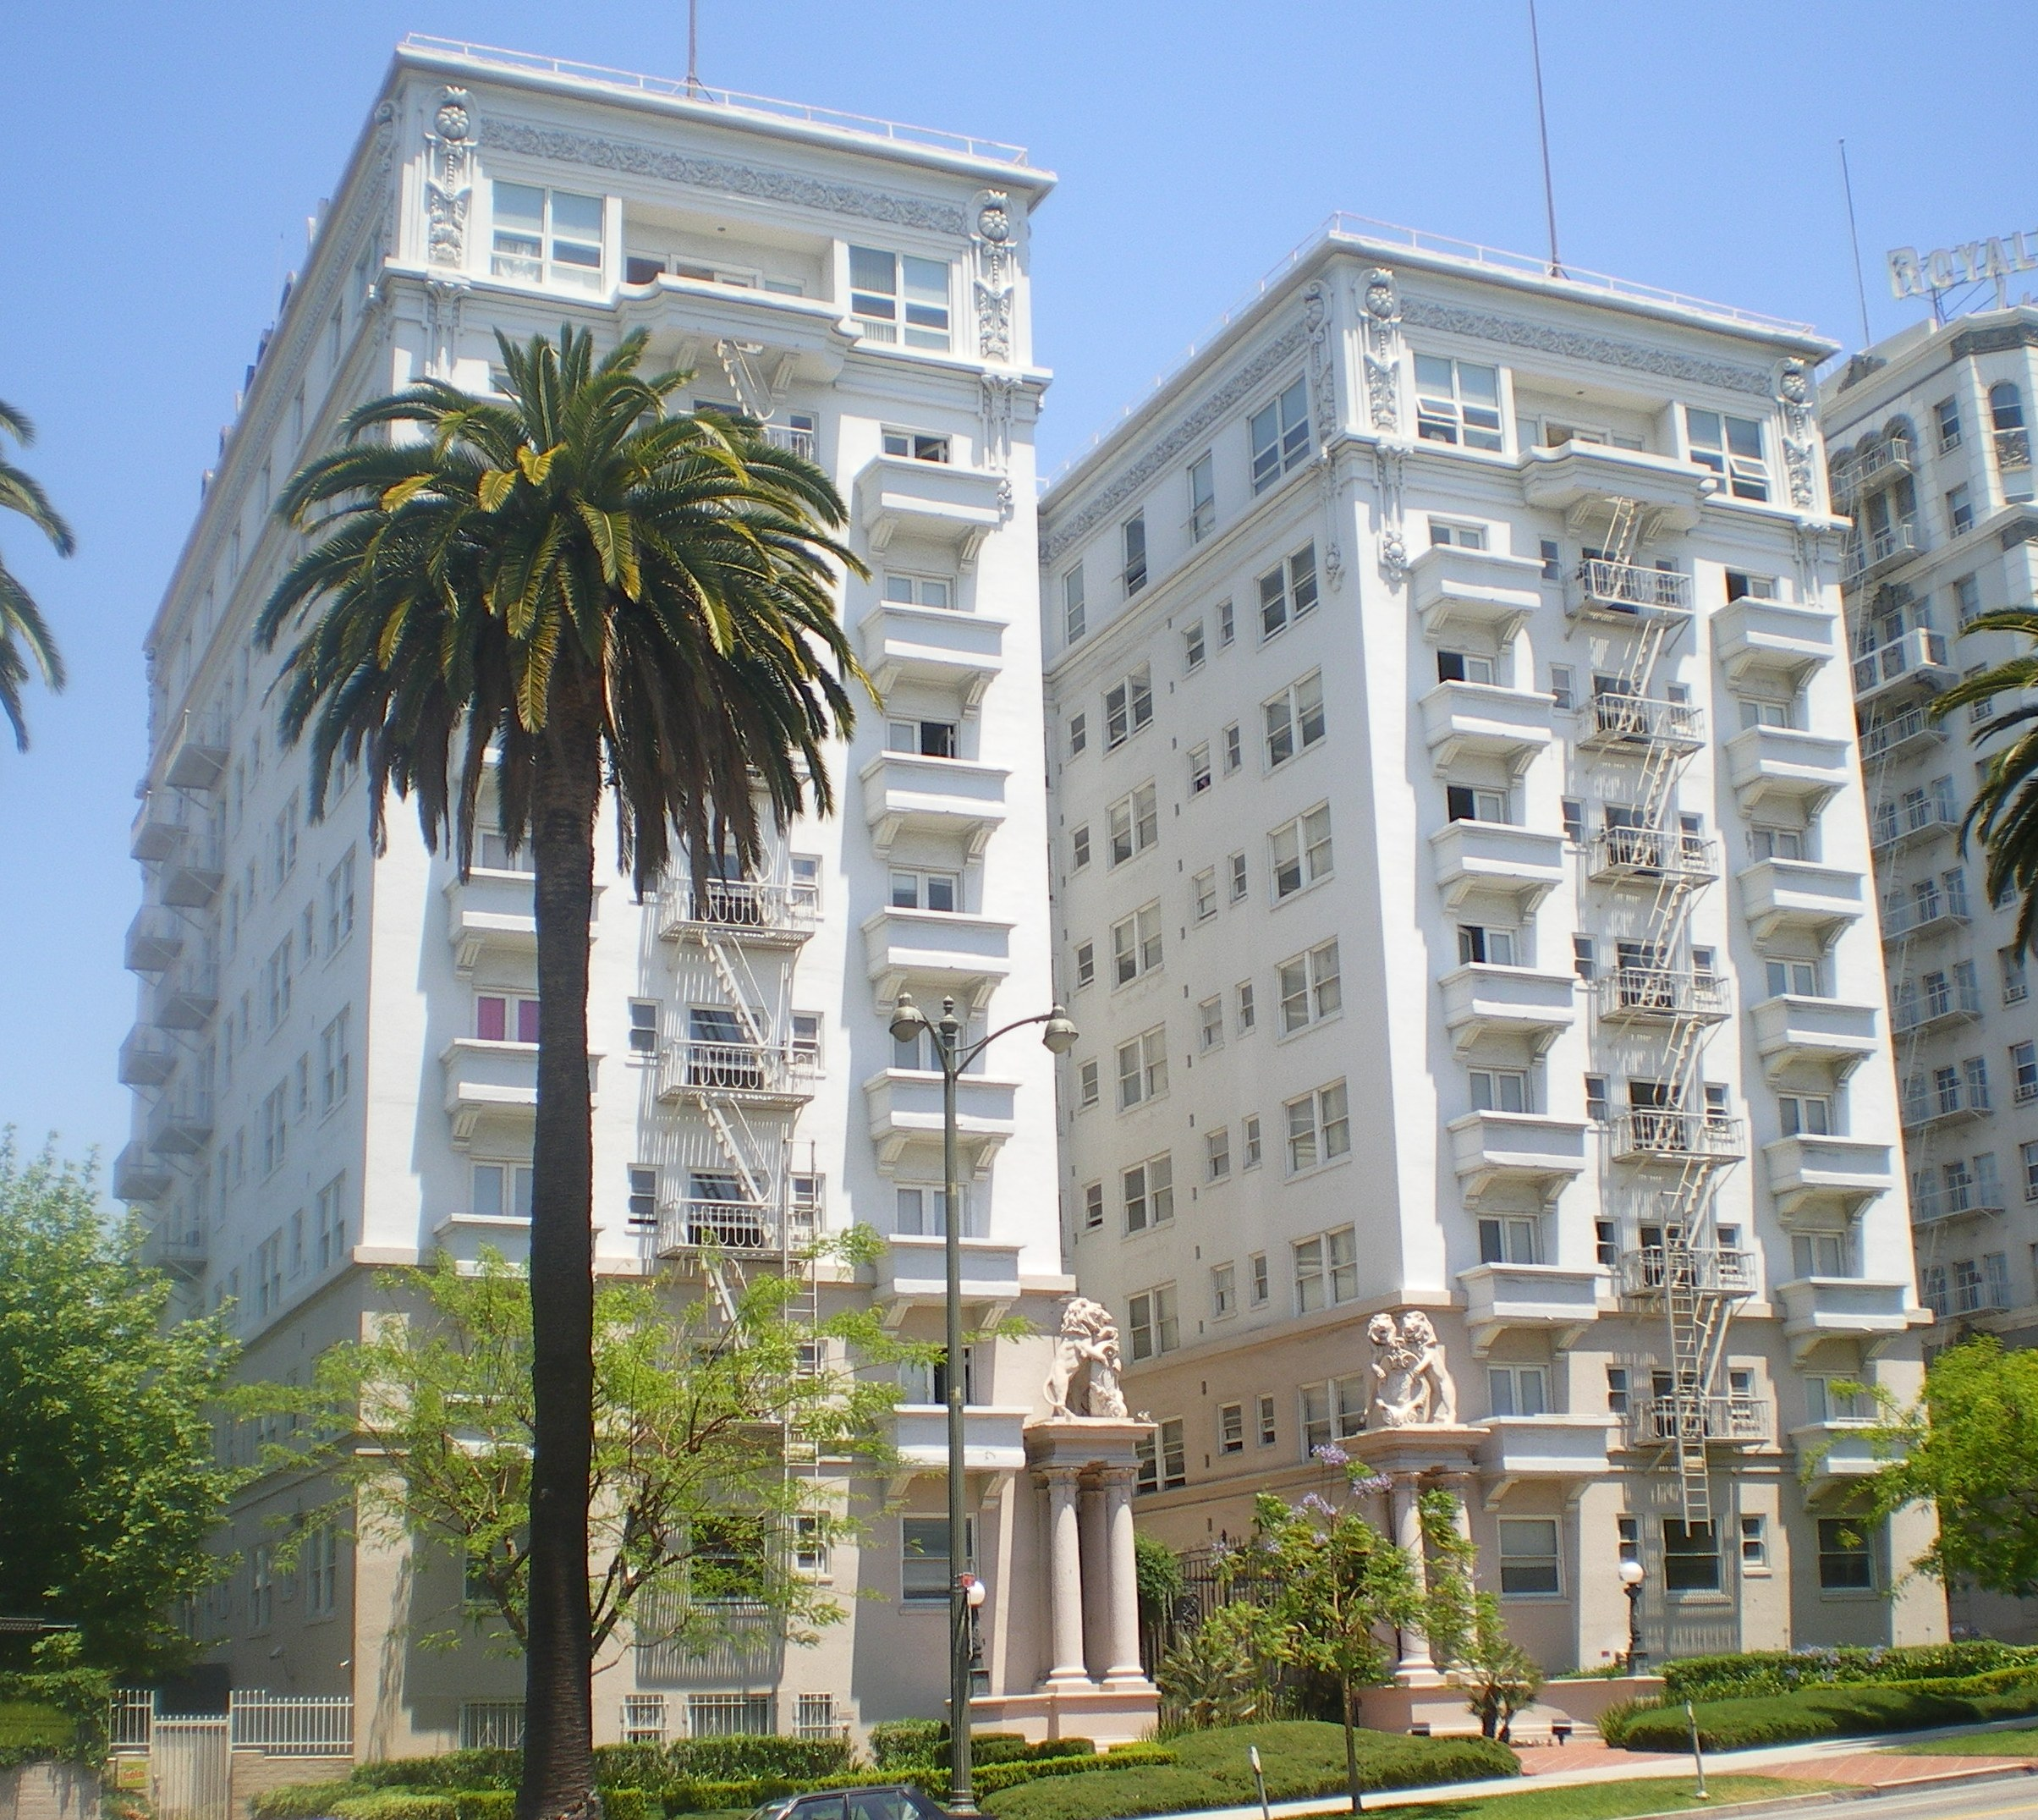 File:Bryson Apartment Hotel, Los Angeles.JPG - Wikimedia ...